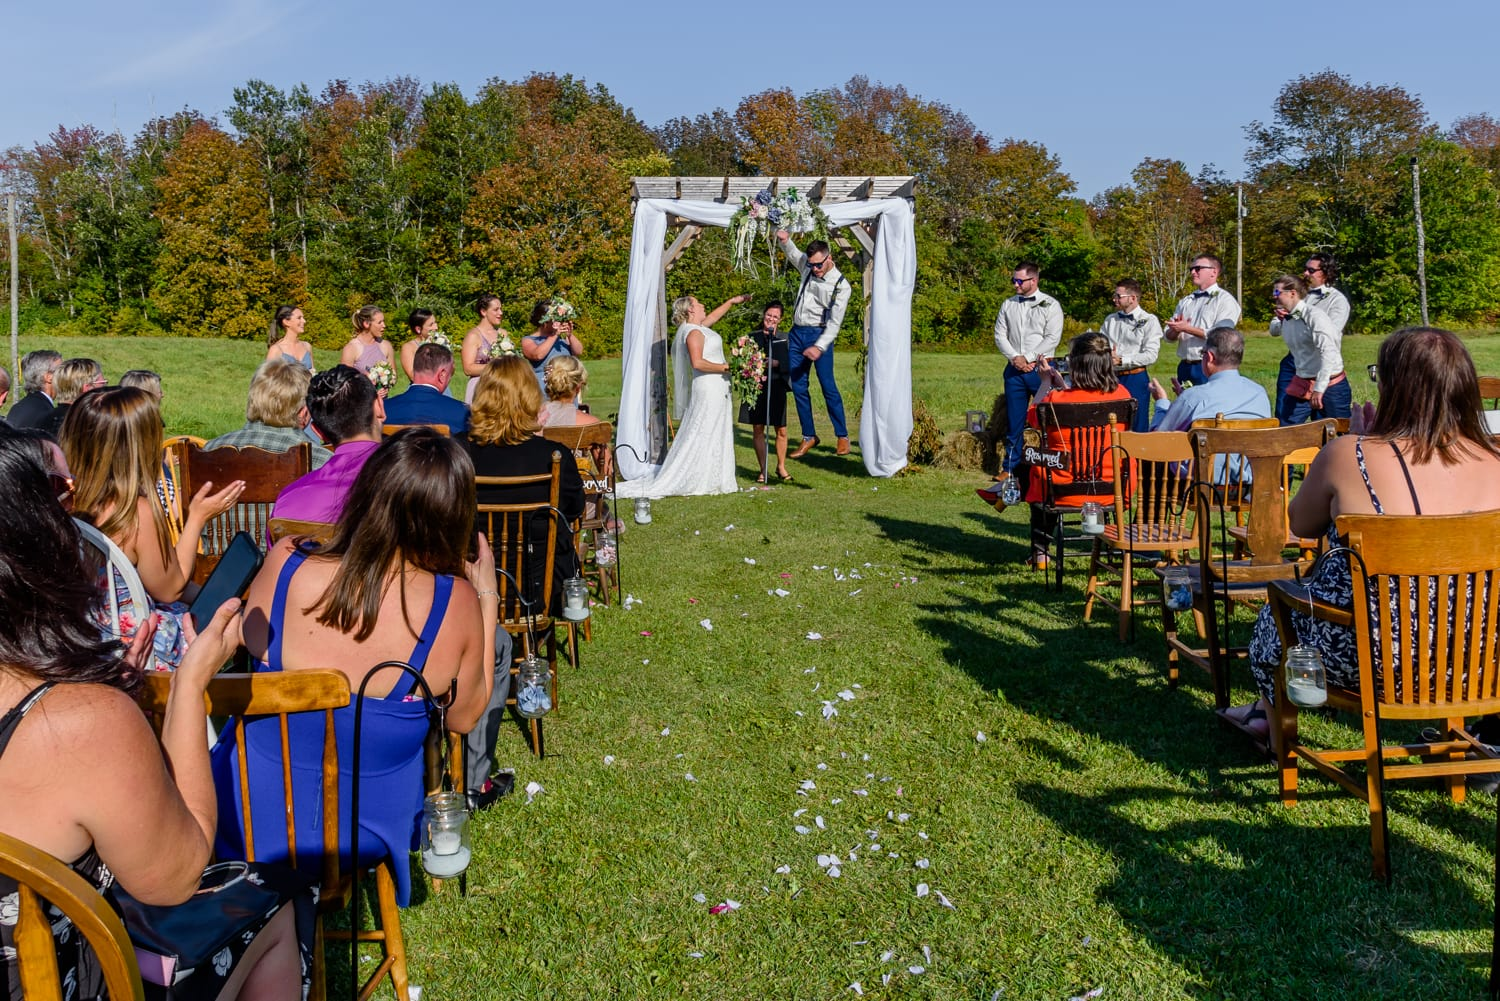 The bride and groom's wedding ceremony at the barn at Sadie Belle Farm.